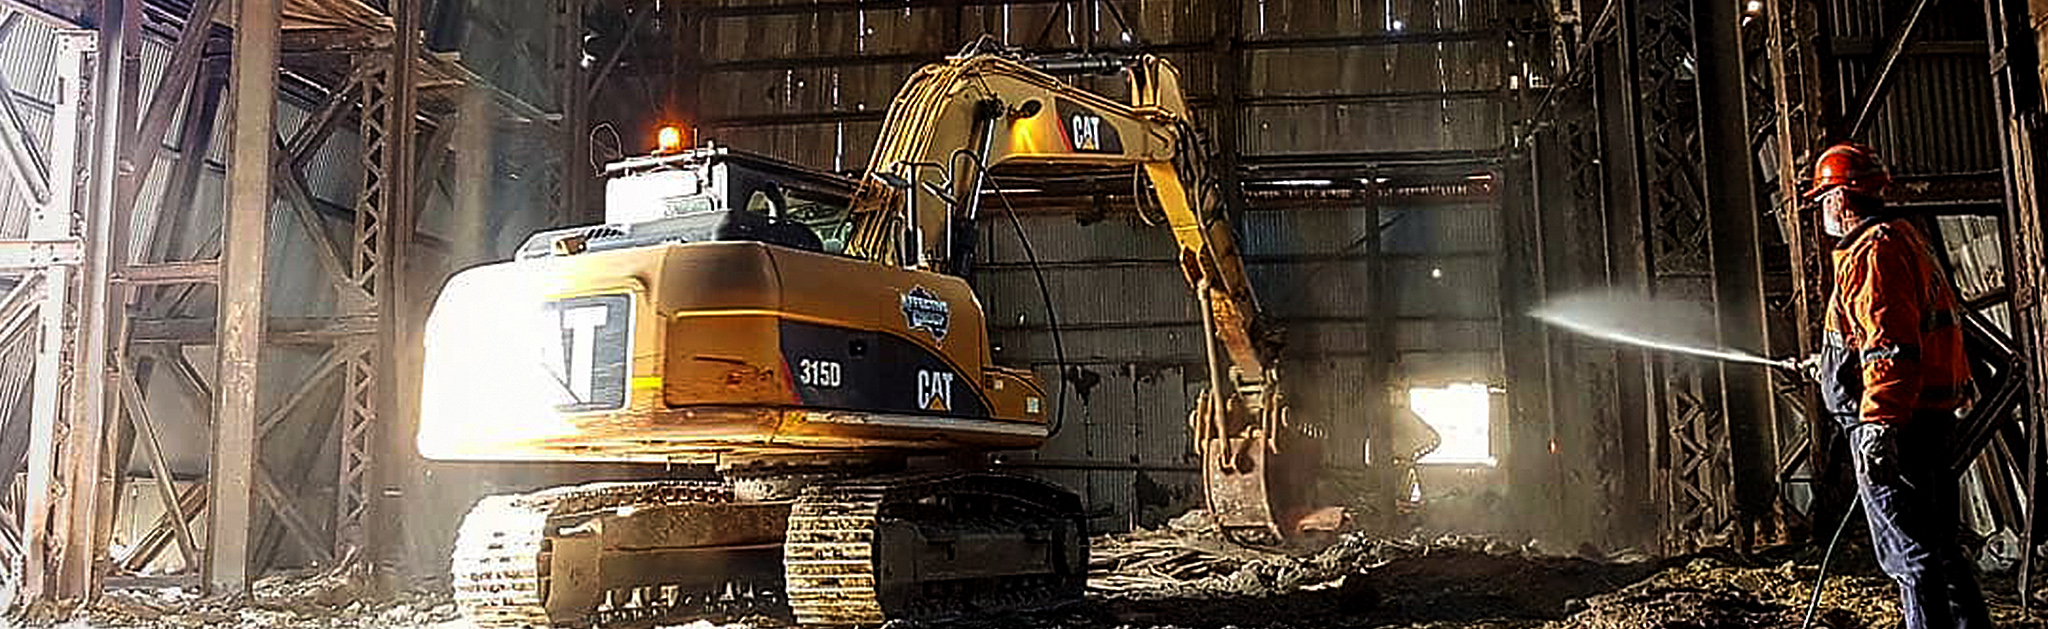 Civil earthworks machinery in NSW